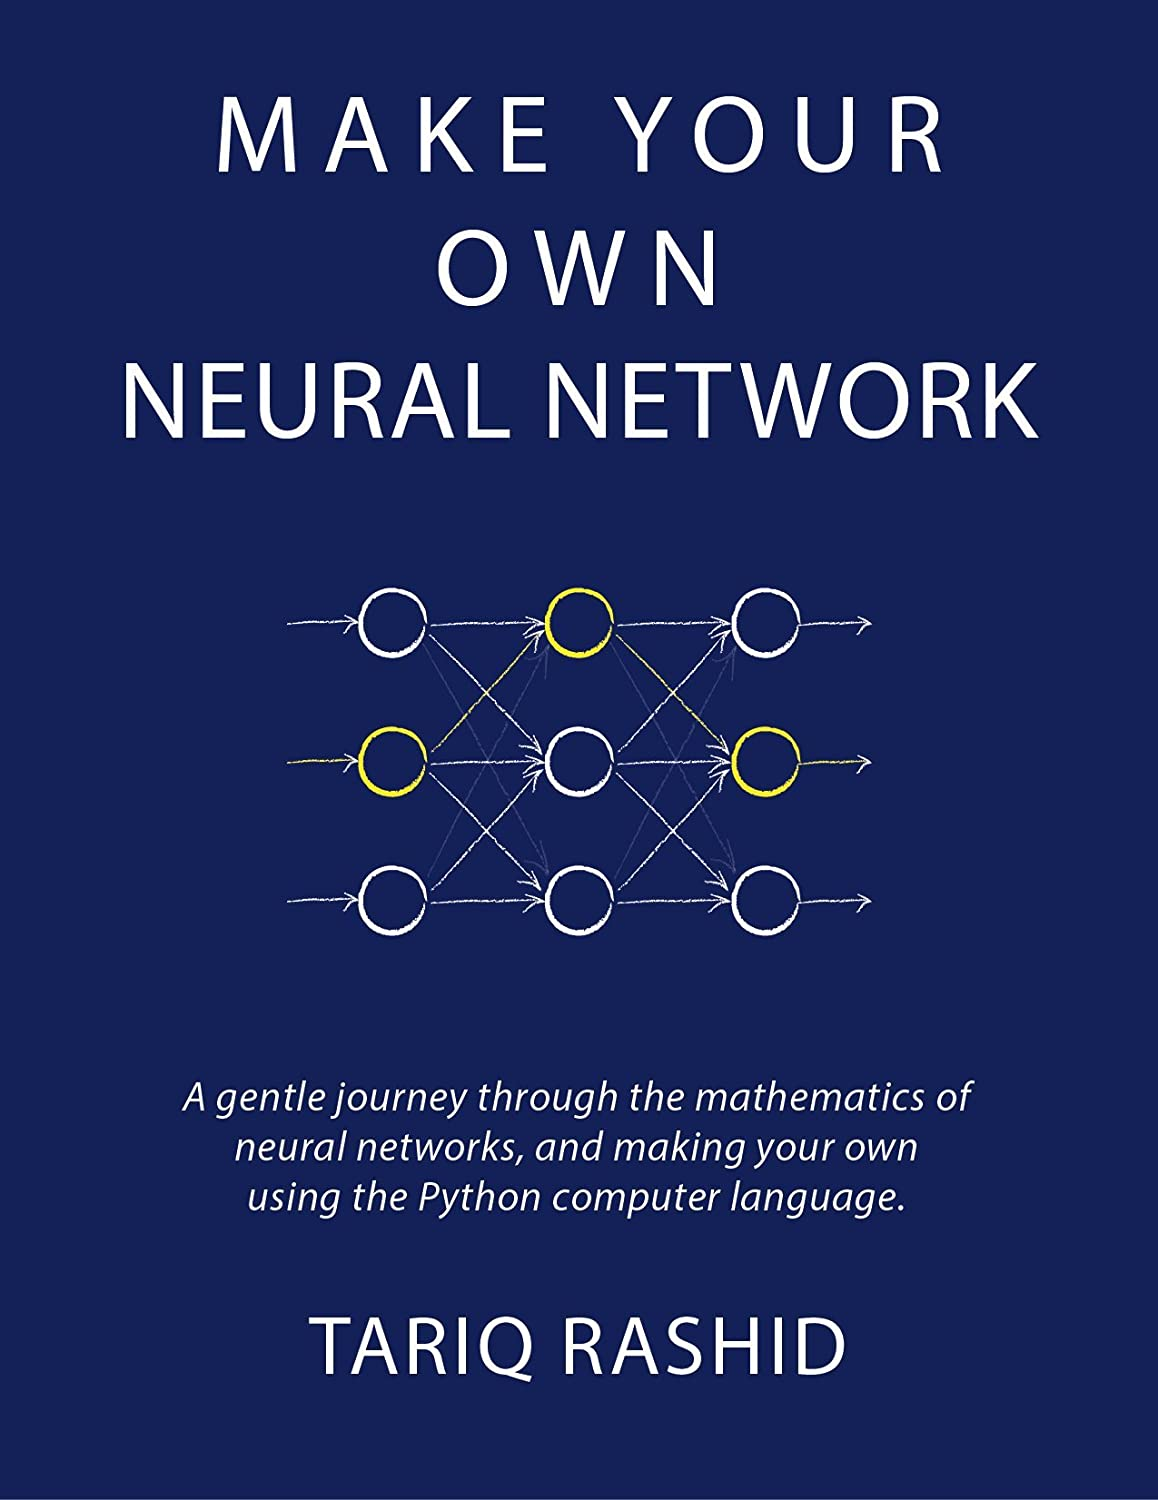 Make Your Own Neural Network See more